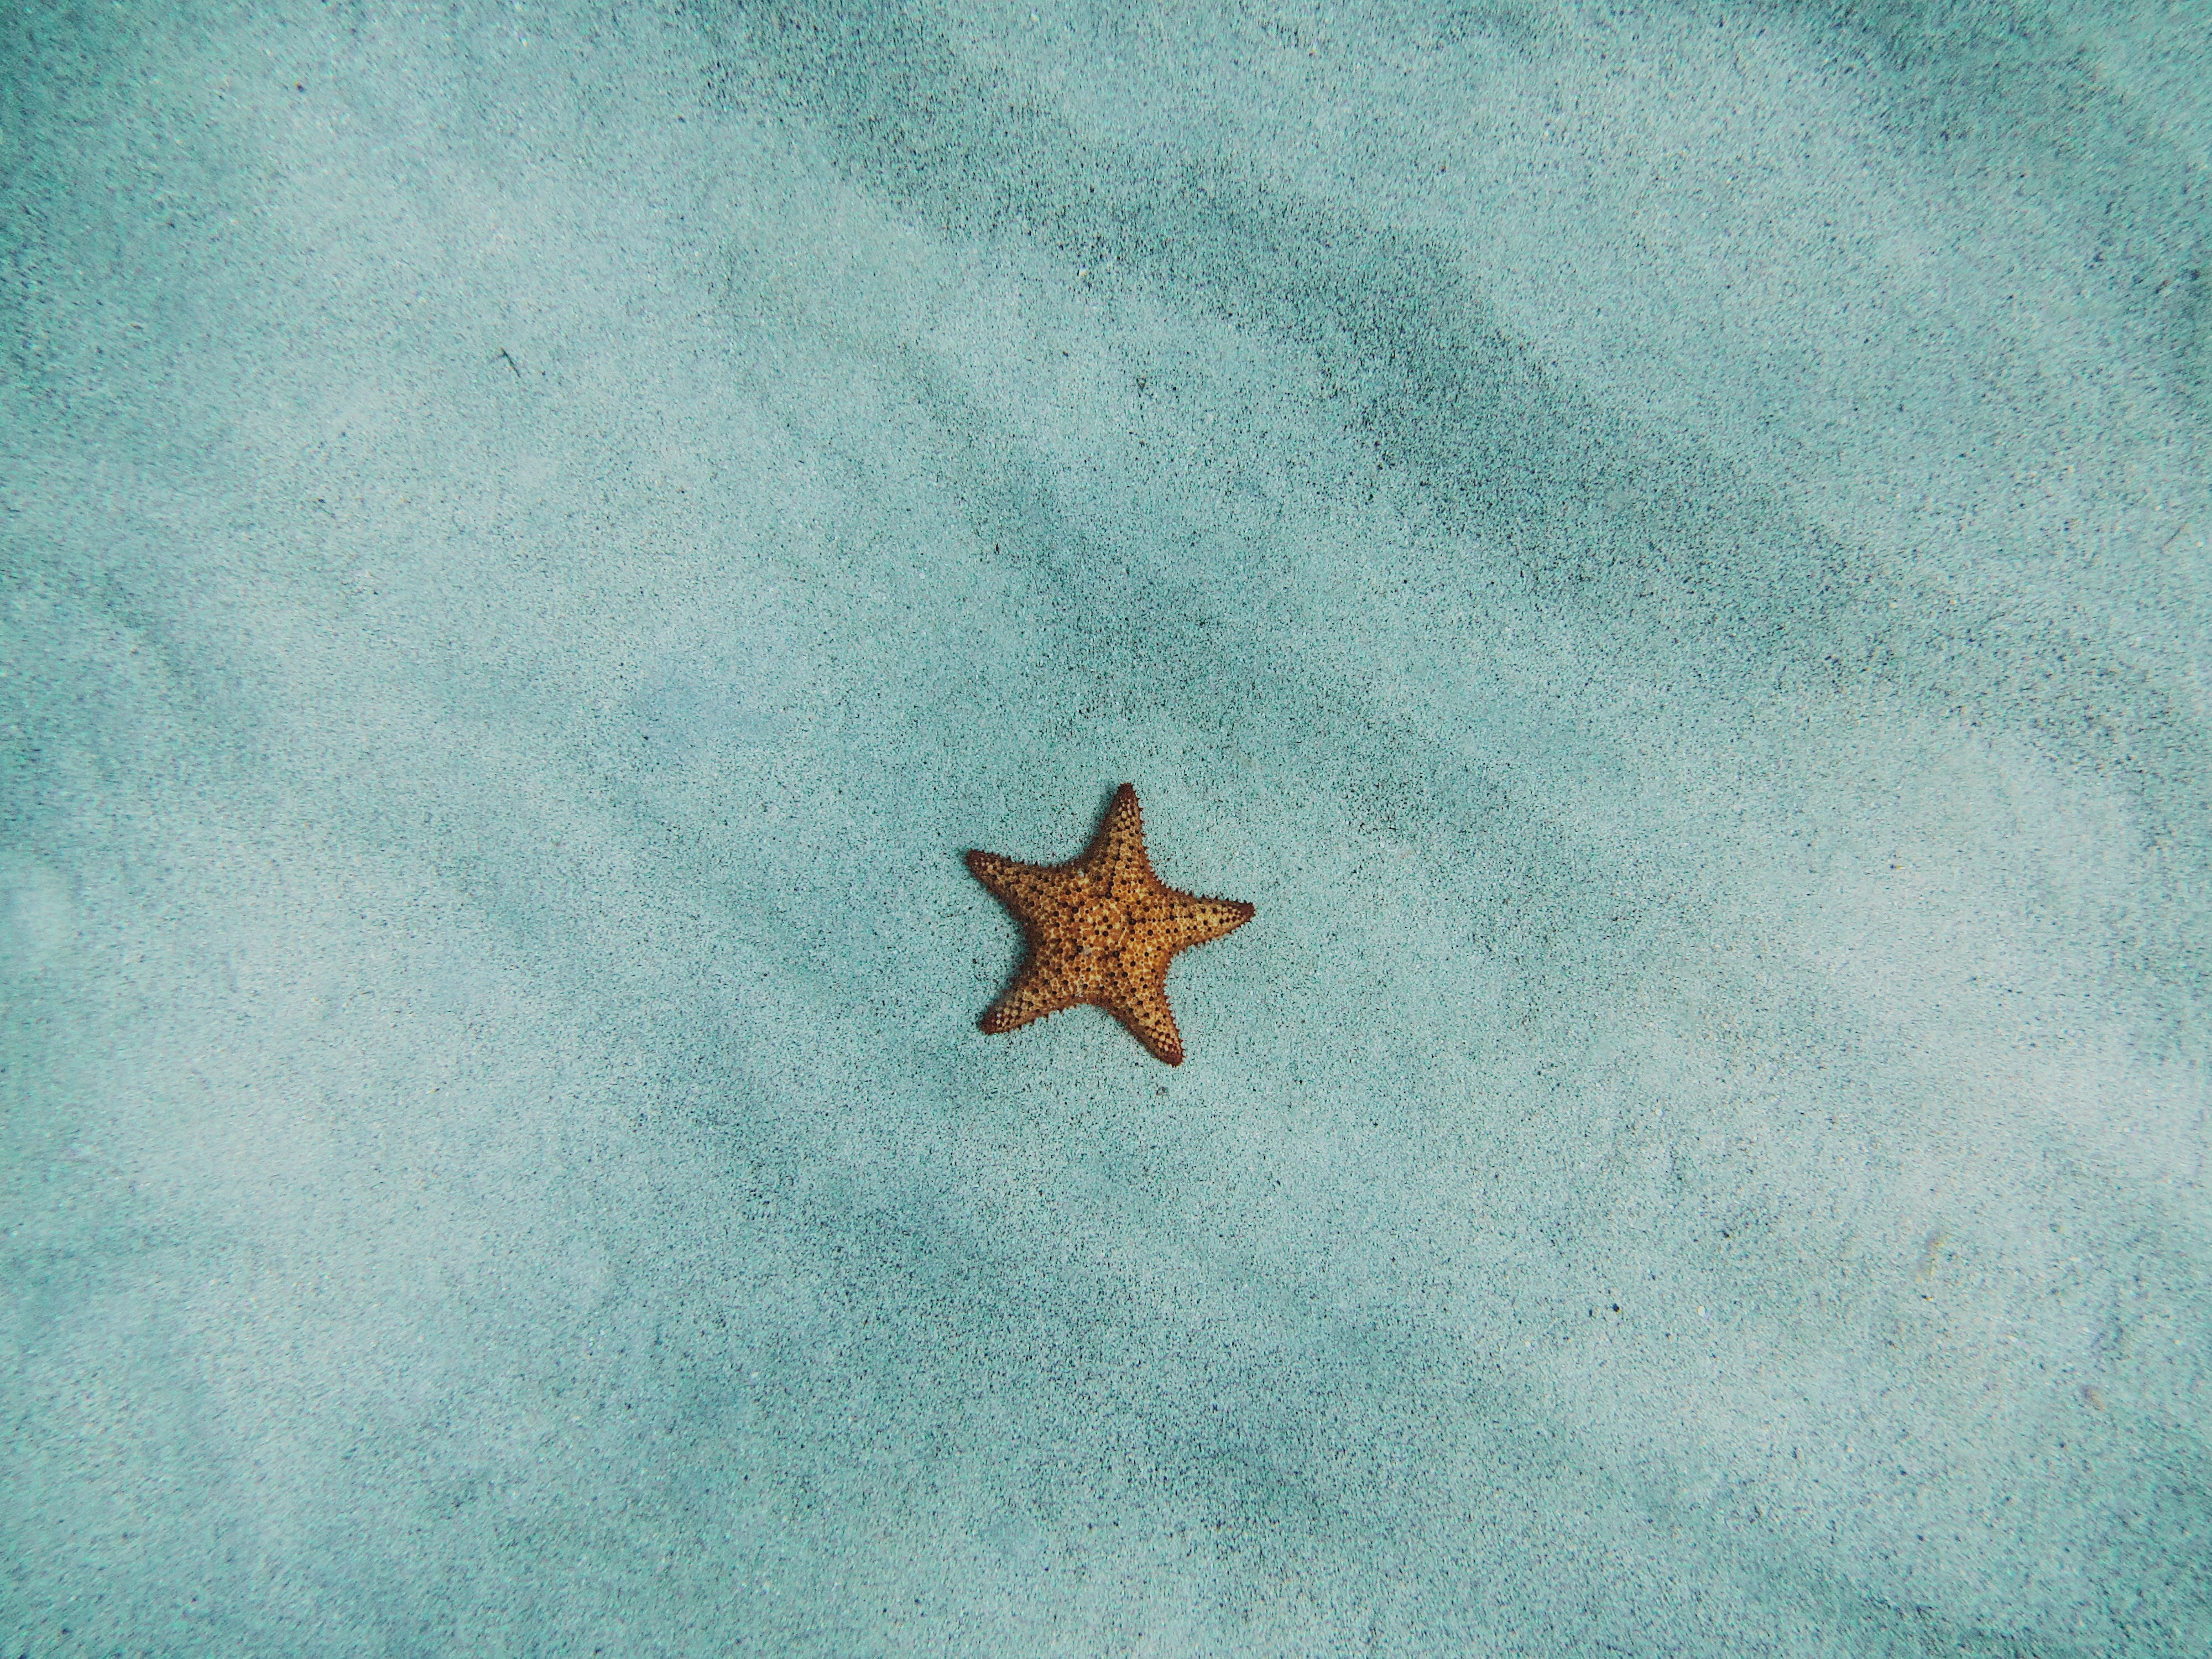 156140 download wallpaper Minimalism, Starfish, Sand, Surface screensavers and pictures for free